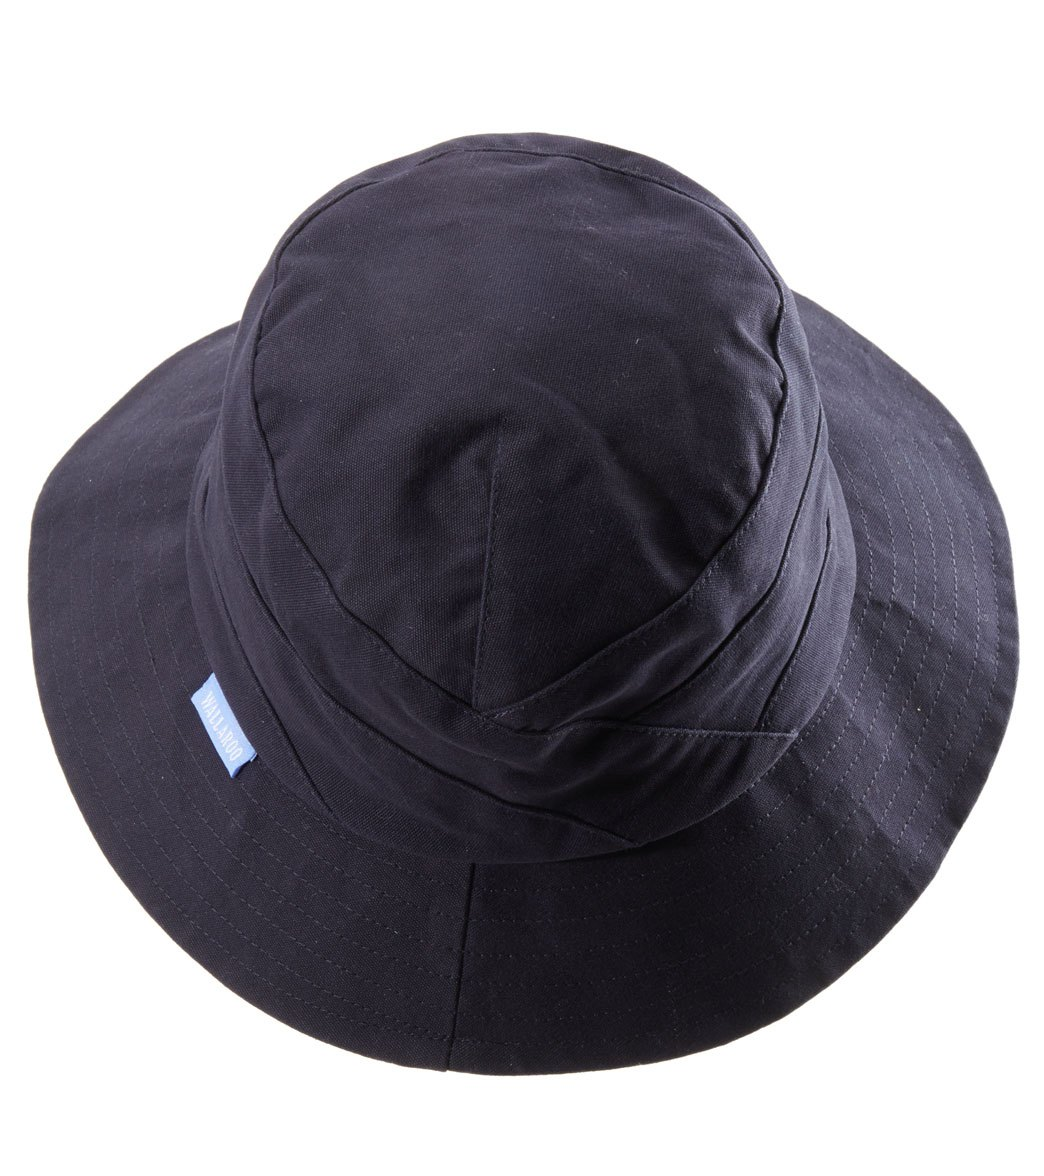 8fae28896f9 Wallaroo Women s Taylor Bucket Hat at SwimOutlet.com